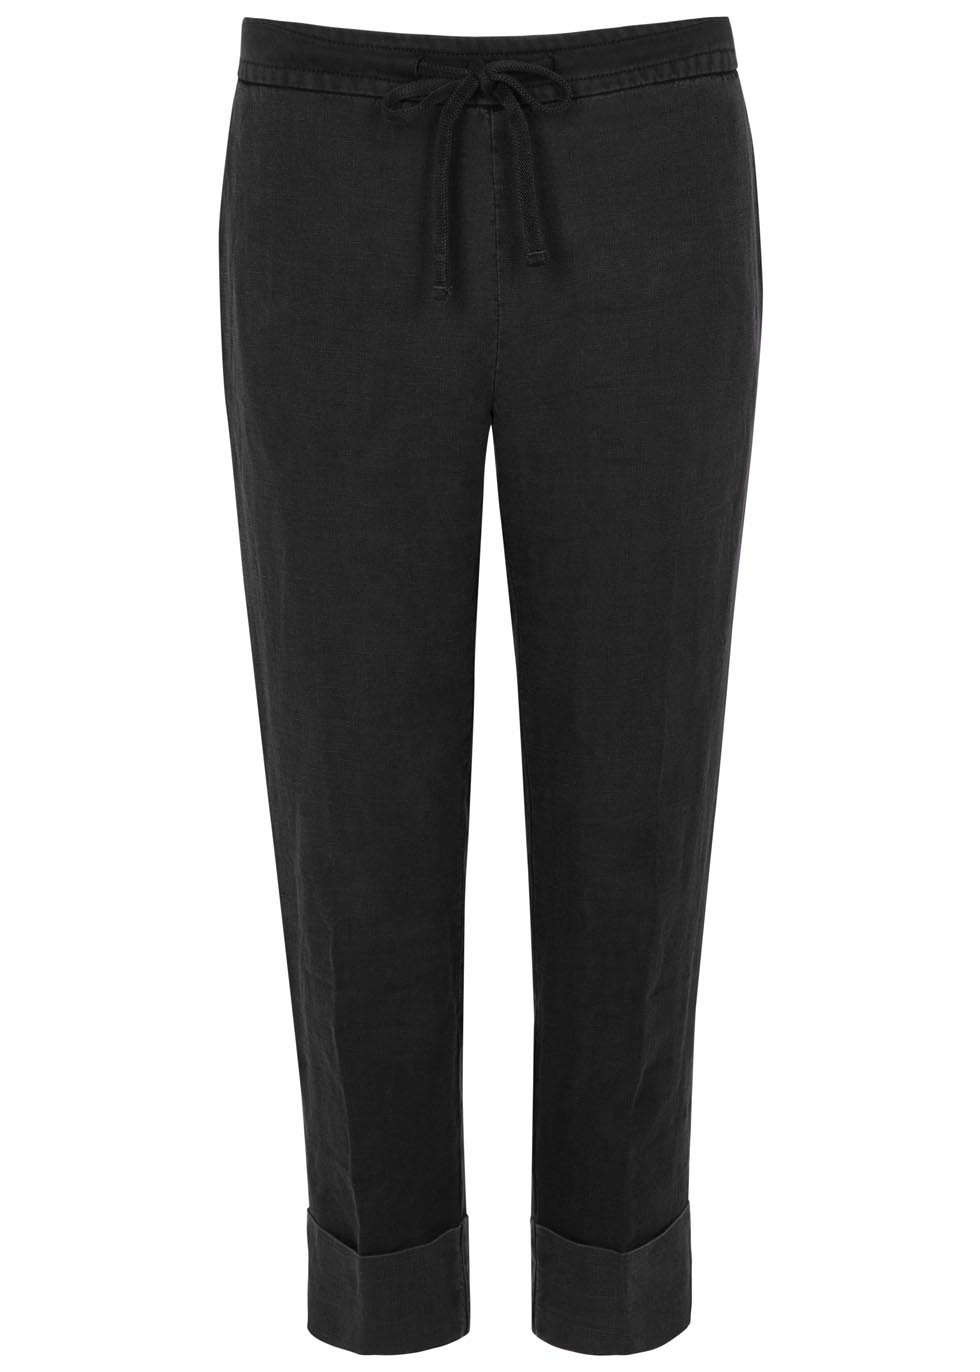 Charcoal Cropped Linen Trousers - pattern: plain; waist detail: belted waist/tie at waist/drawstring; waist: mid/regular rise; predominant colour: charcoal; occasions: casual; length: ankle length; fibres: cotton - 100%; fit: tapered; pattern type: fabric; texture group: woven light midweight; style: standard; season: s/s 2016; wardrobe: basic